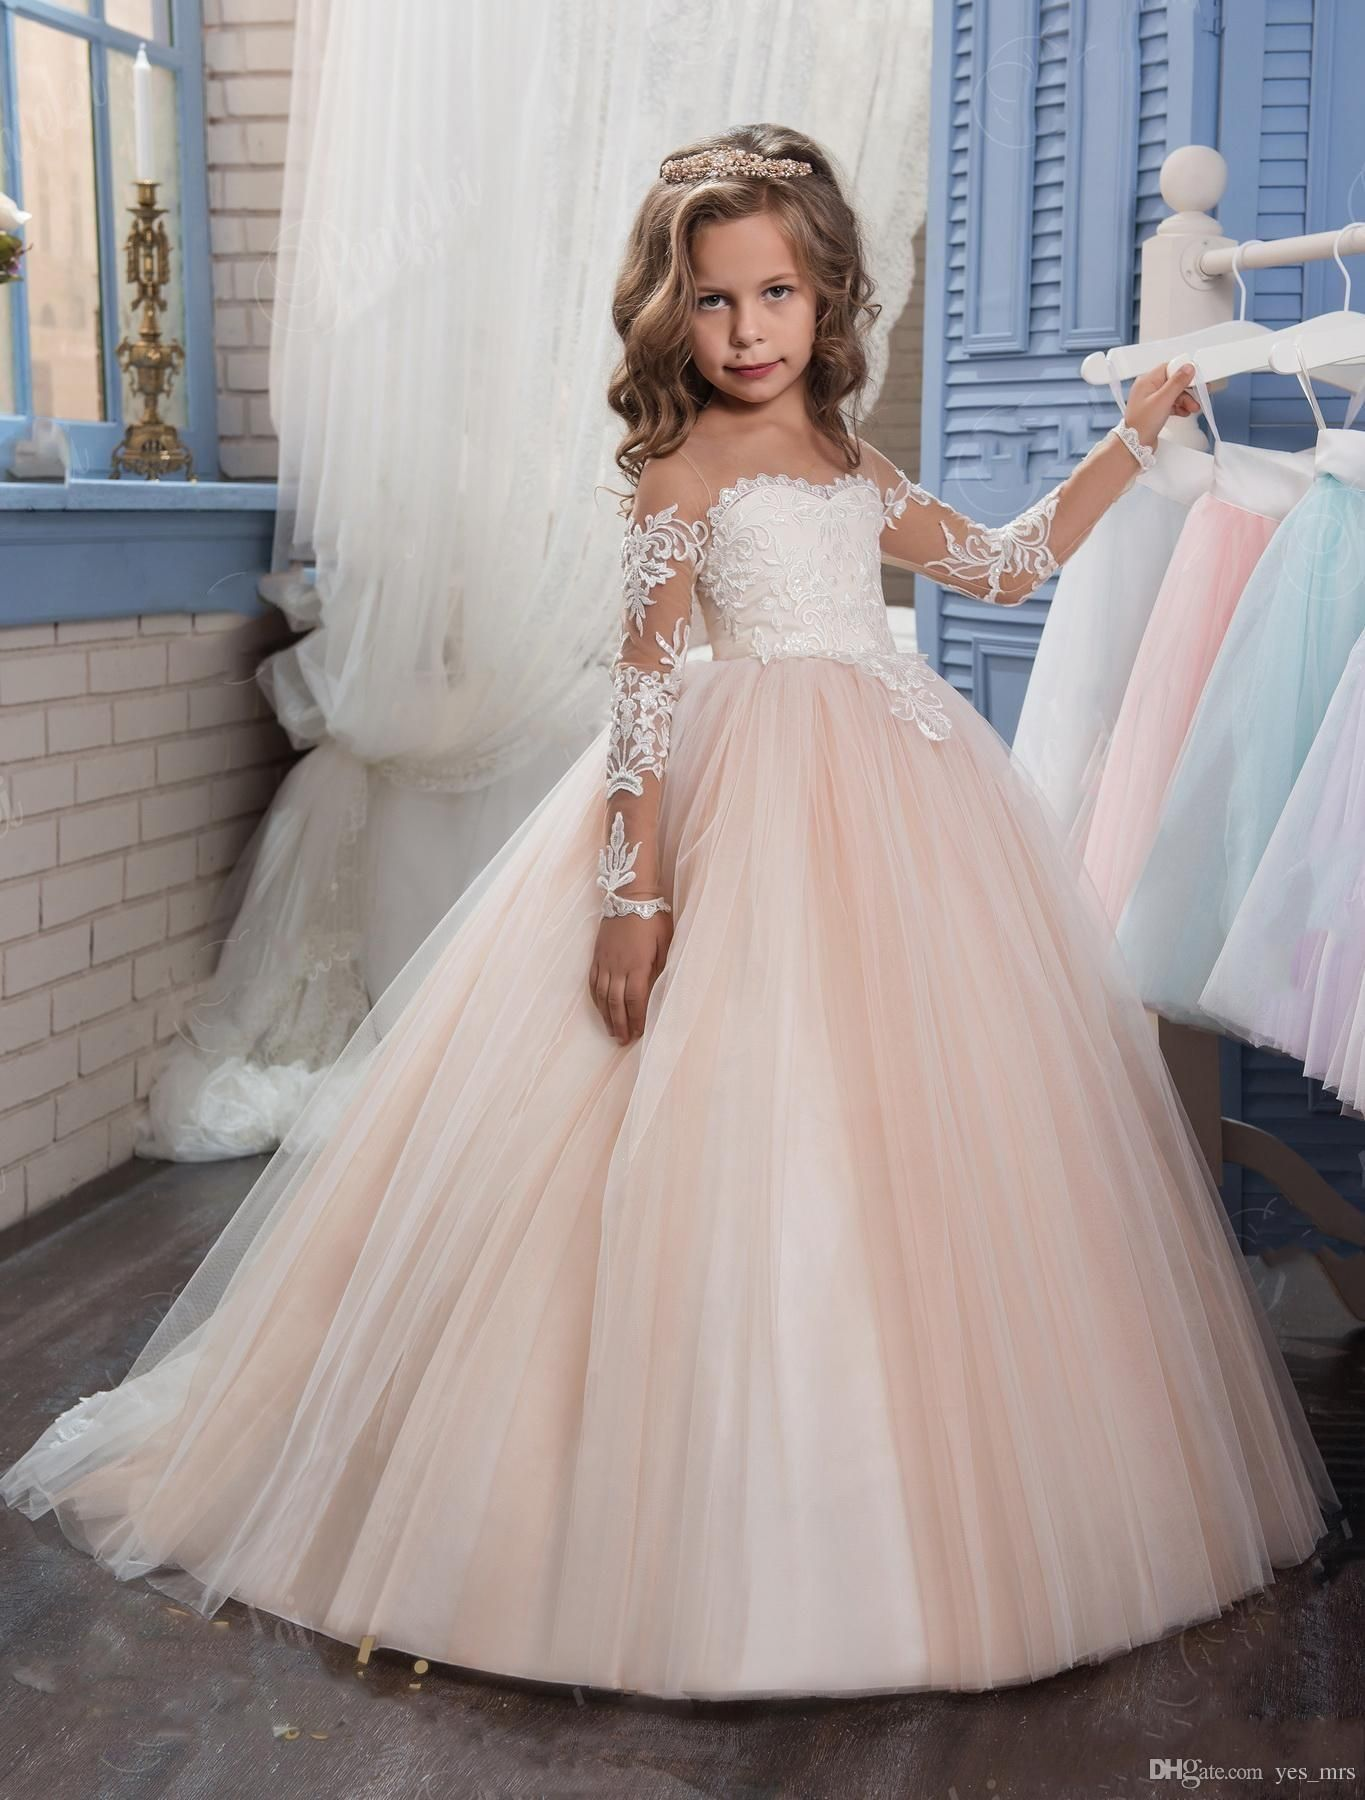 3c5246f574c 2017 New Cheap Flower Girls Dresses For Weddings Jewel Neck Long Sleeves  Lace Blush Pink Birthday Dress Children Party Kids Girl Ball Gowns